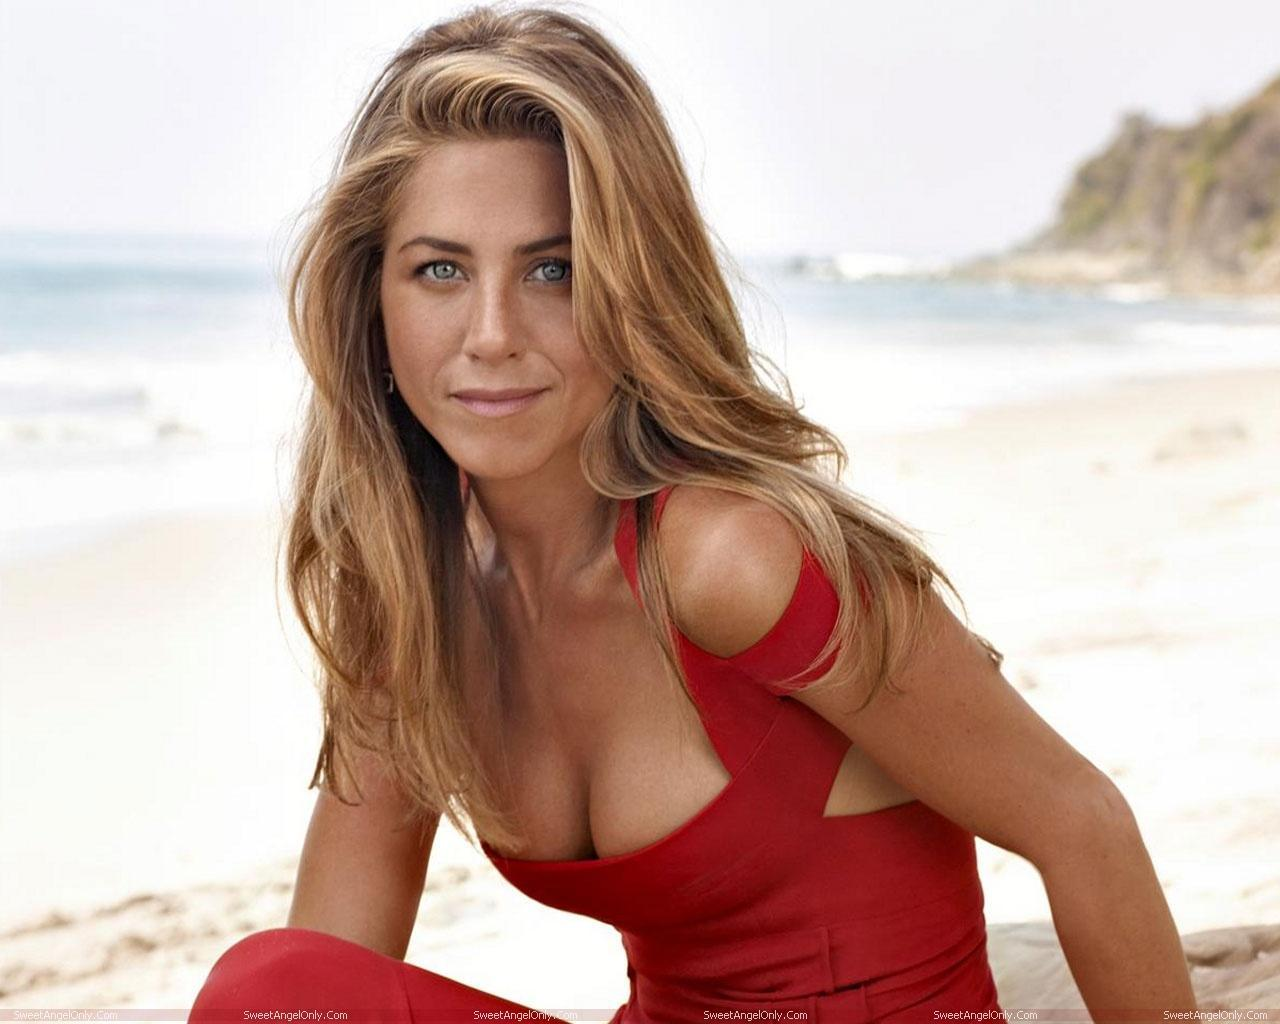 http://1.bp.blogspot.com/-GhKtRy6oB1A/TWVr0lAL_bI/AAAAAAAAEkA/ZD3UCu-kc0M/s1600/actress_jennifer_aniston_hot_wallpapers_in_bikini_sweetangelonly_09.jpg